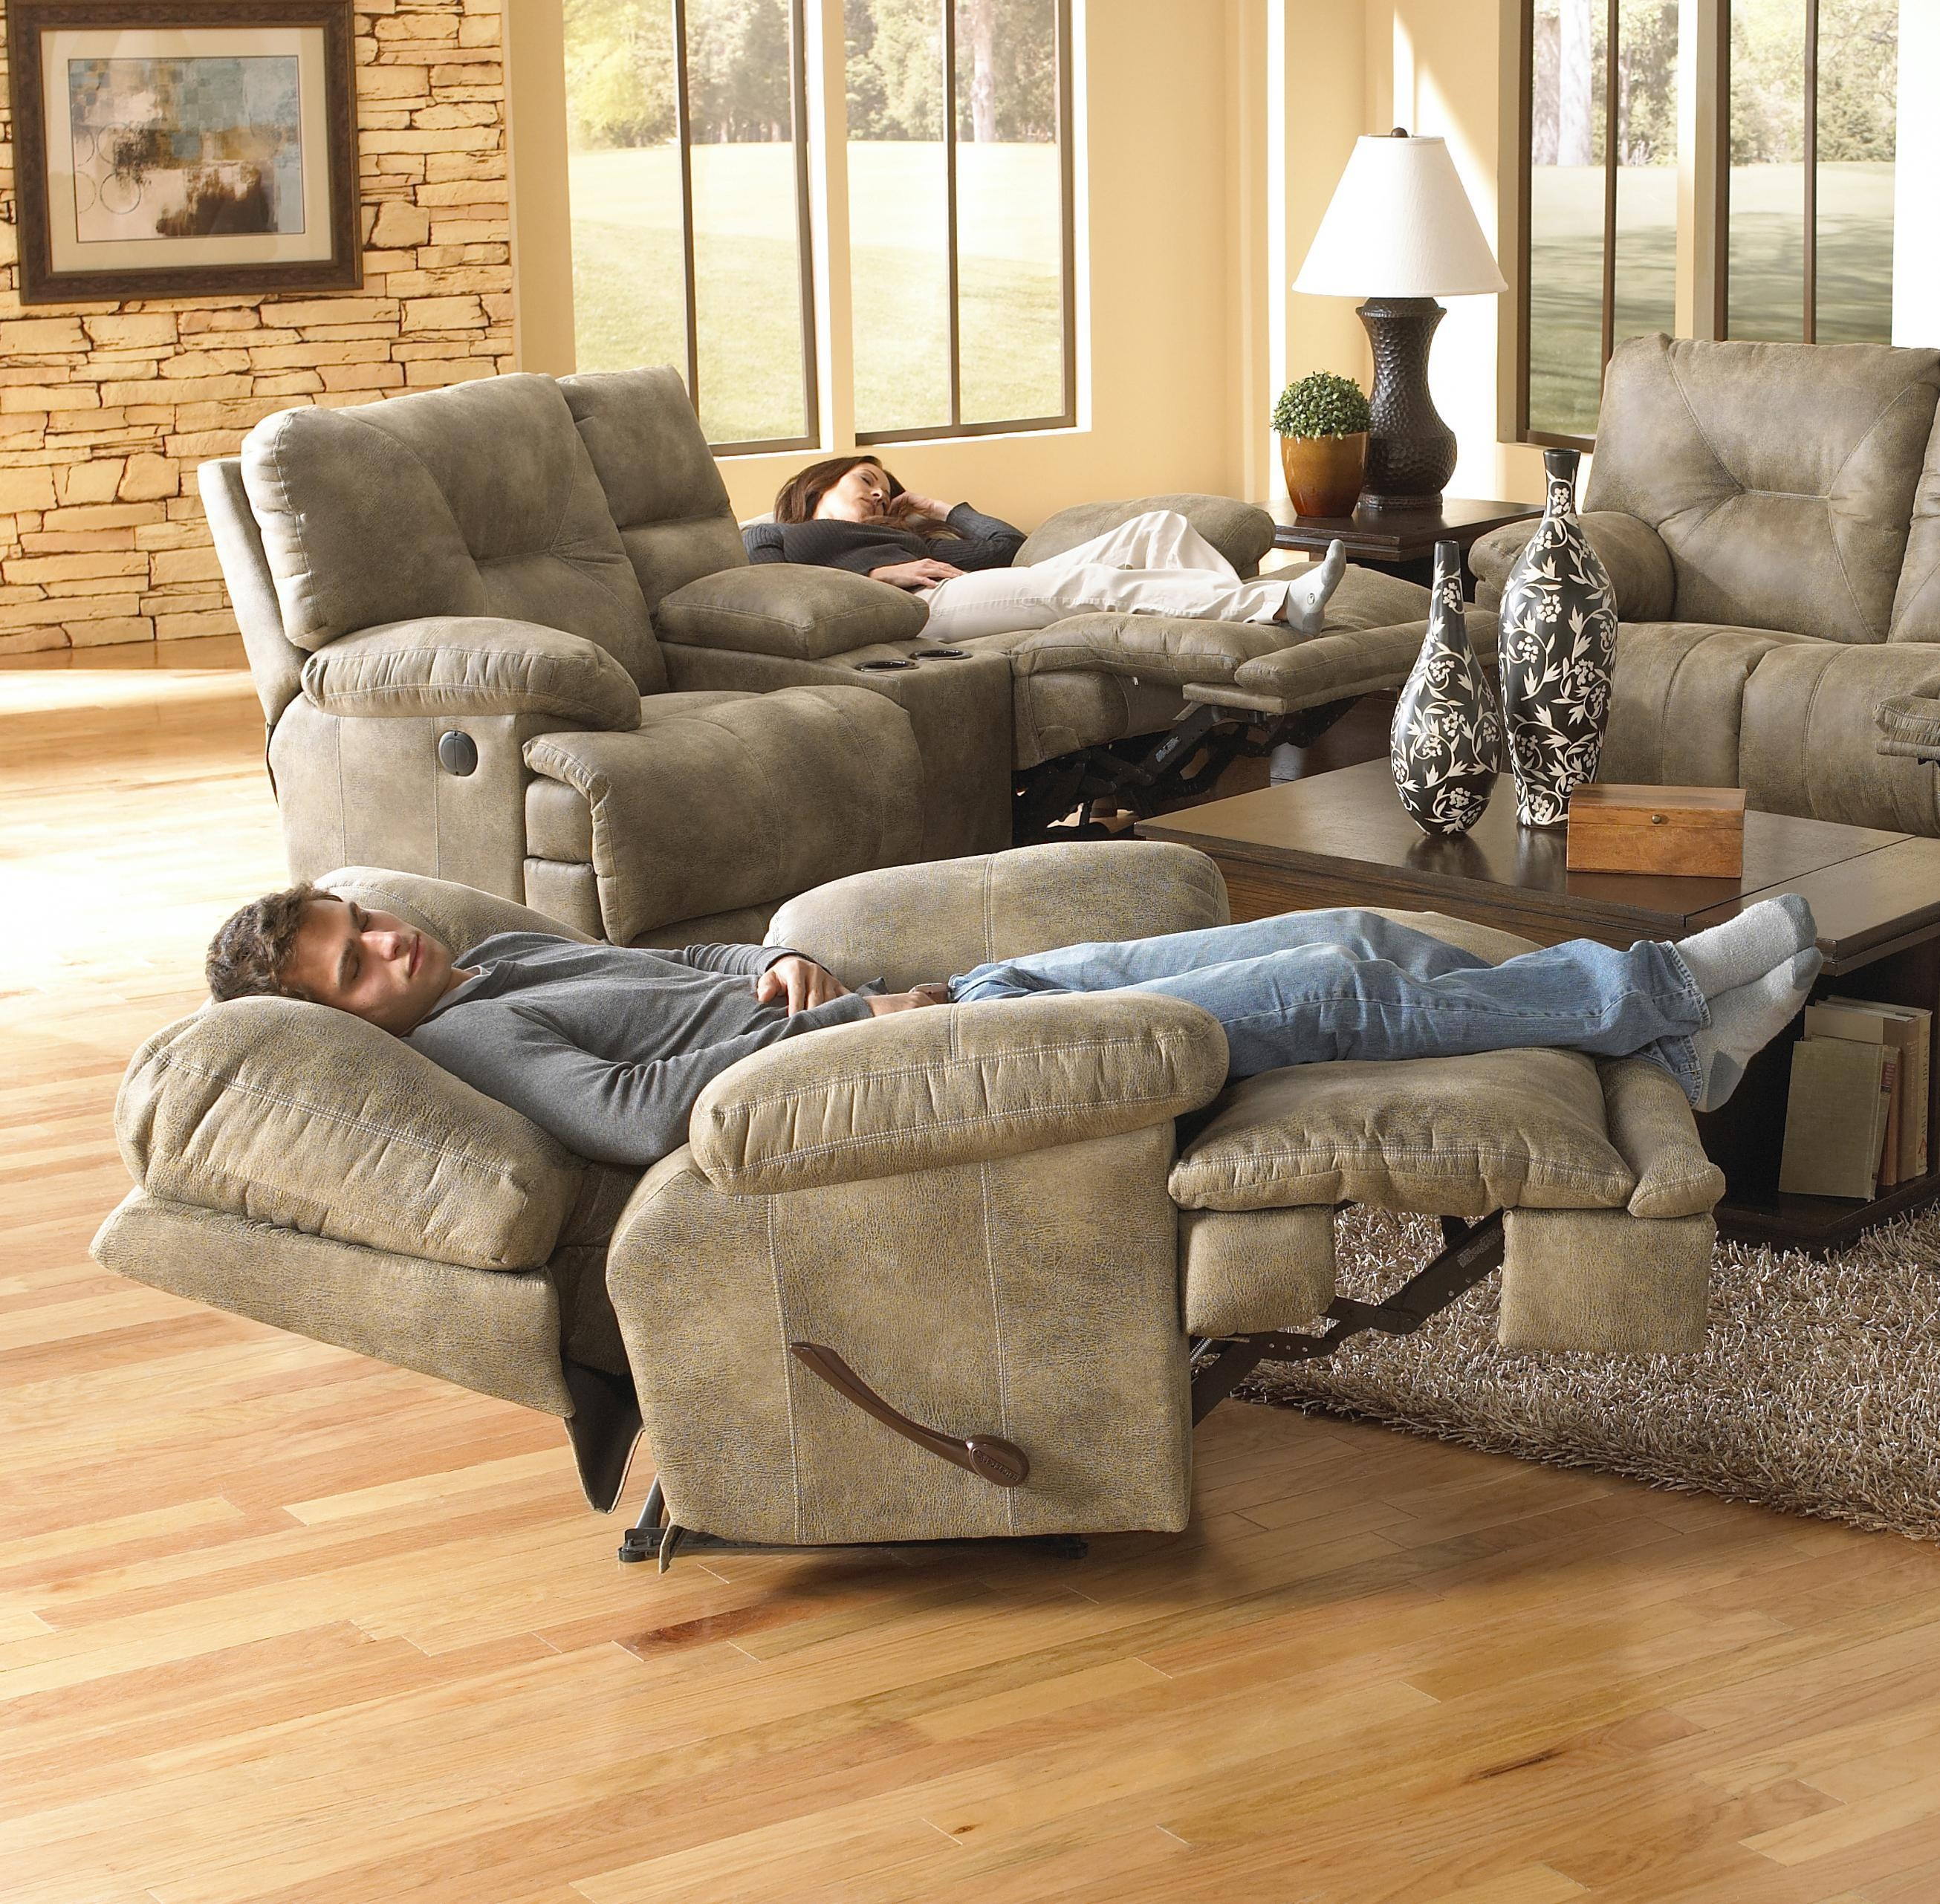 Furniture: Captivating Catnapper Recliner For Best Furniture Idea Regarding Catnapper Recliner Sofas (Image 14 of 20)